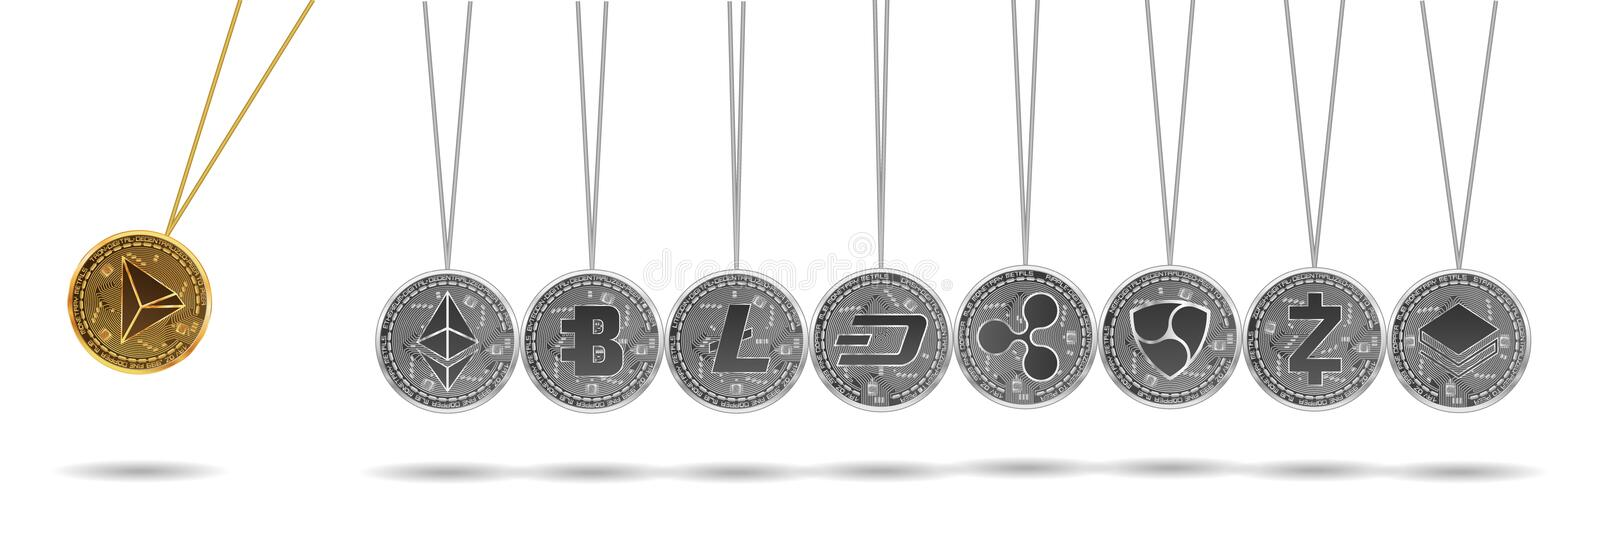 Newton cradle of gold and silver crypto currencies. Newton cradle made of gold tron and silver crypto currencies isolated on white background. Ripple accelerates royalty free stock photo